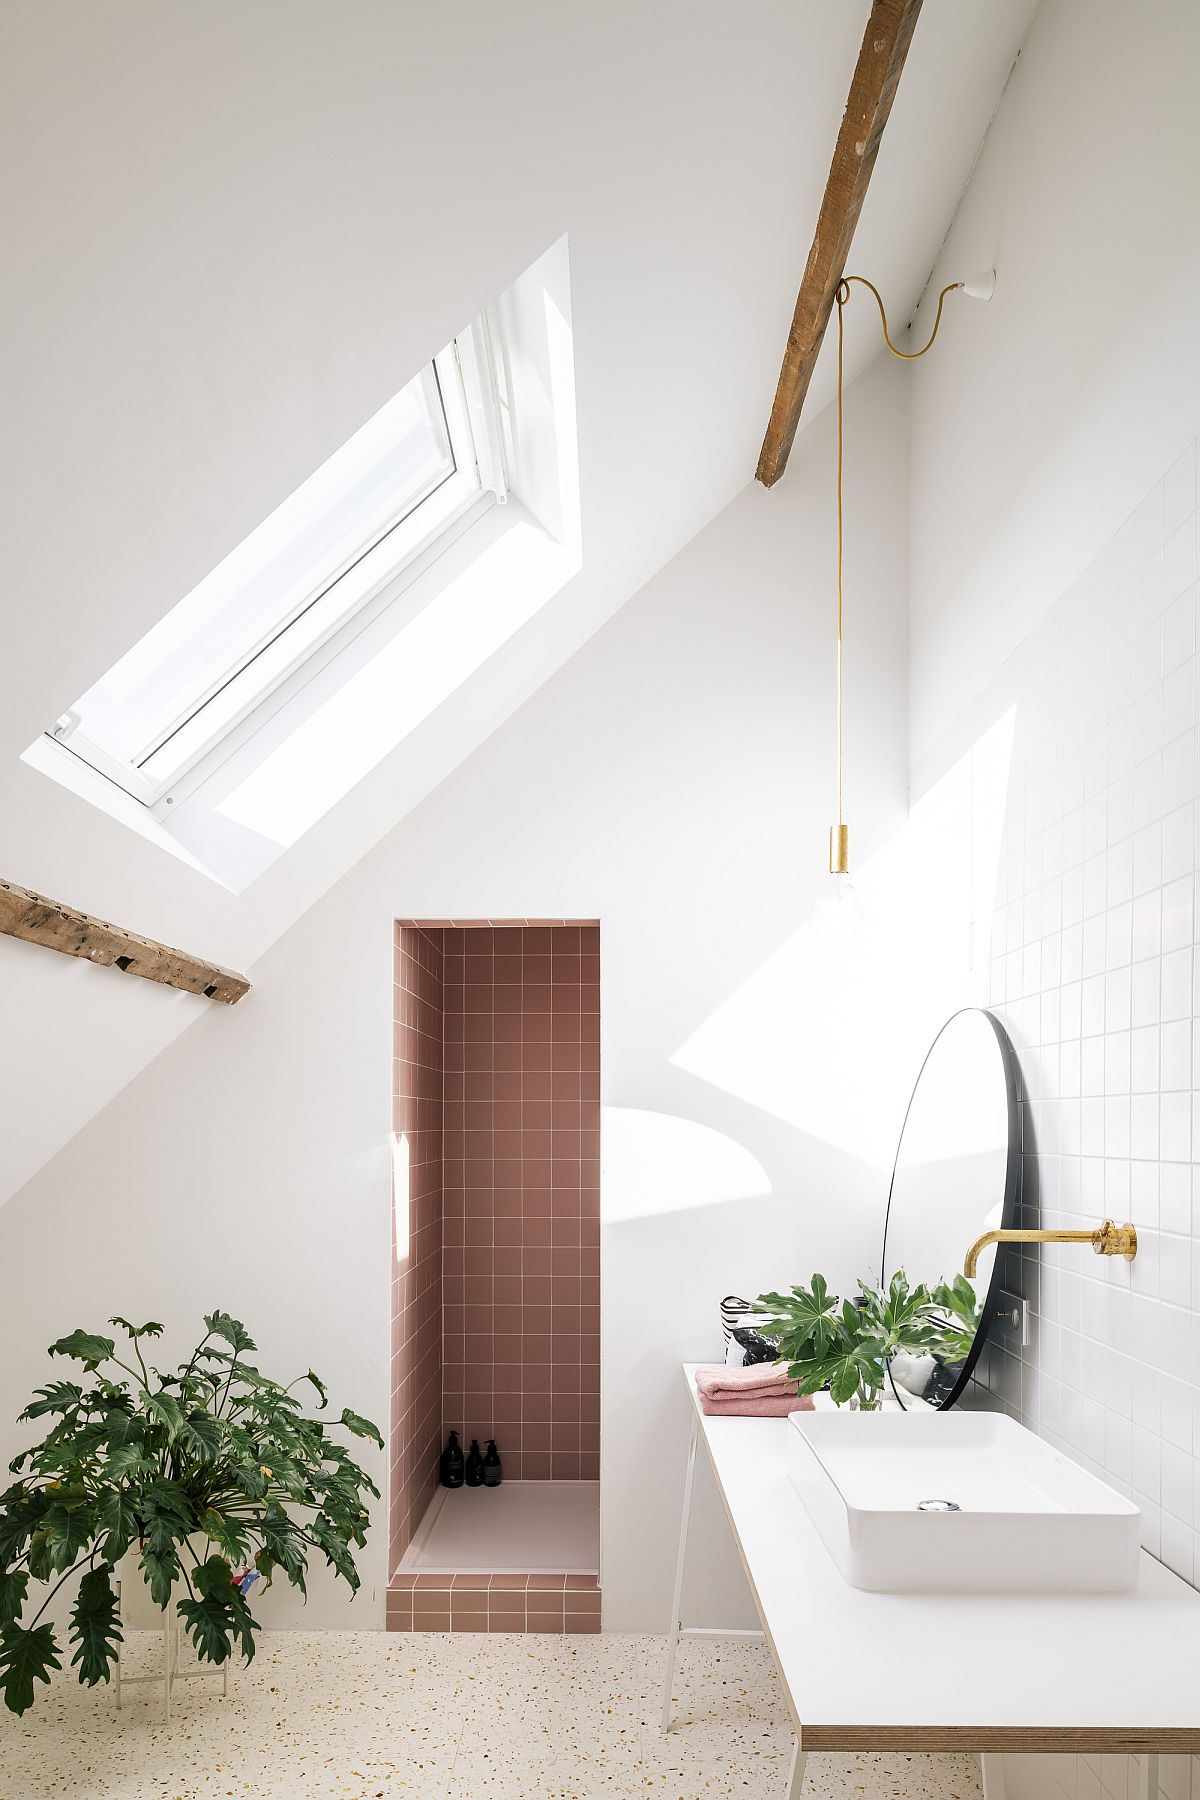 Beautiful-window-brings-natural-light-into-the-bathroom-with-white-walls-and-tiled-shower-area-39378